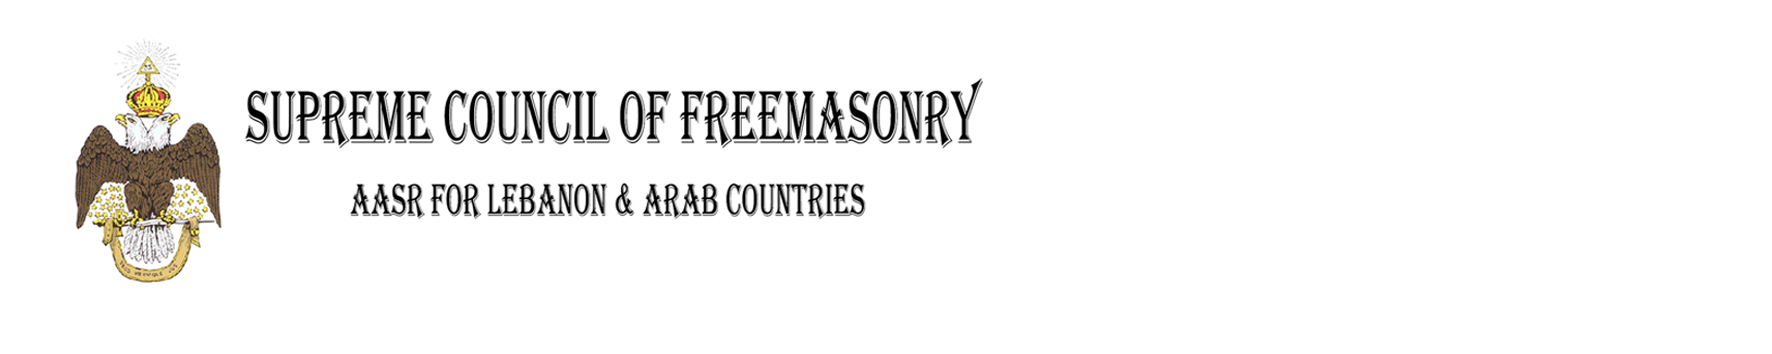 Supreme Council of Freemasonary